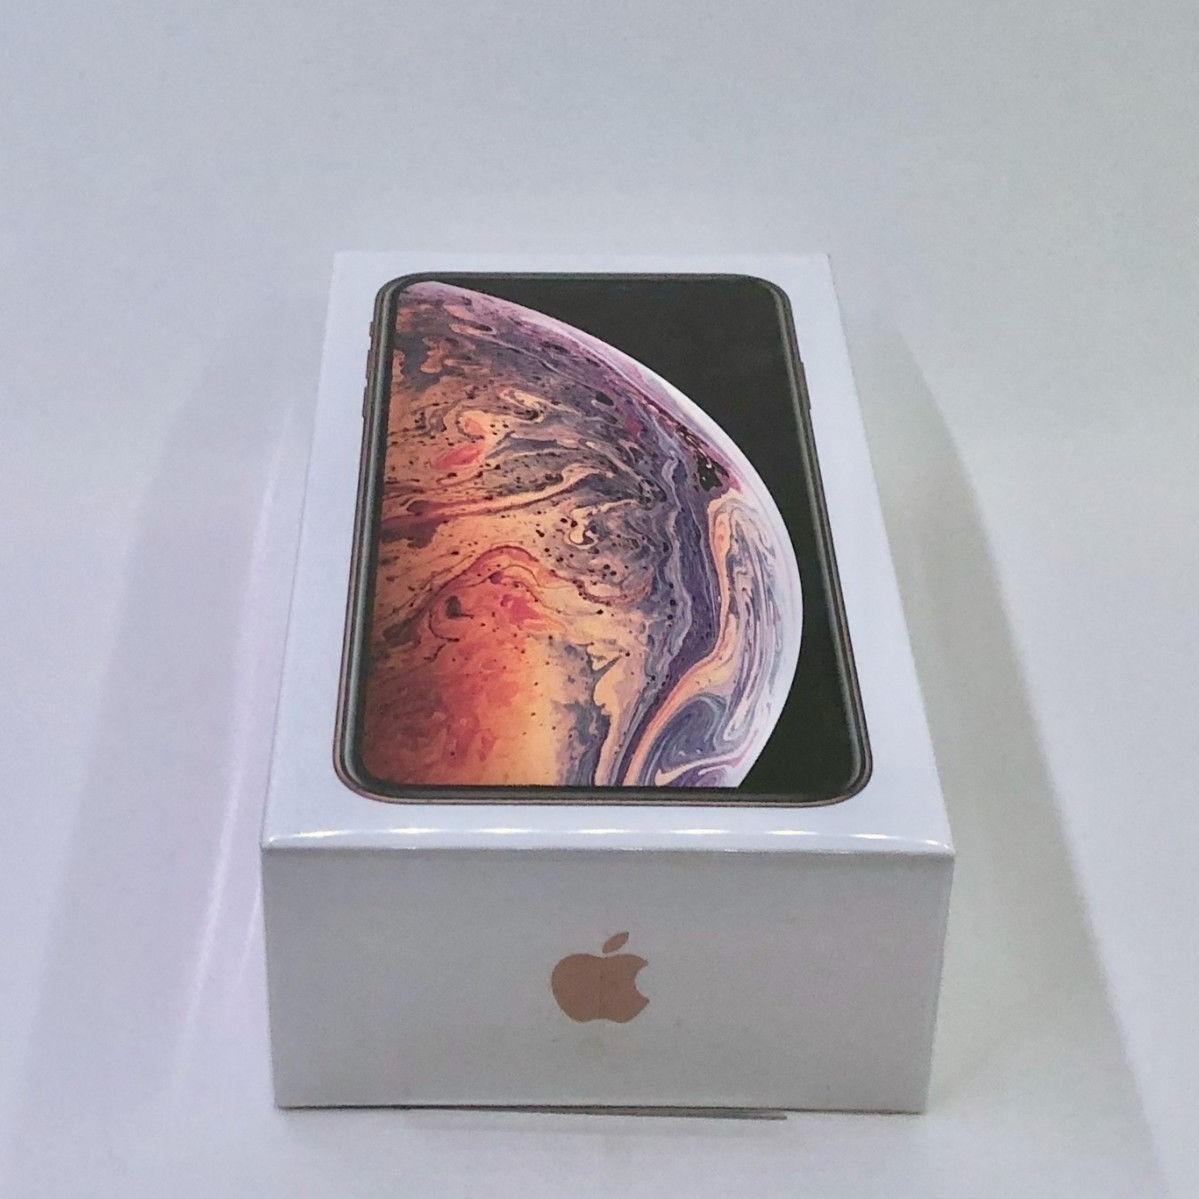 FOR SALE: Brand New Unlocked Apple iPhone XS Max  512GB $700